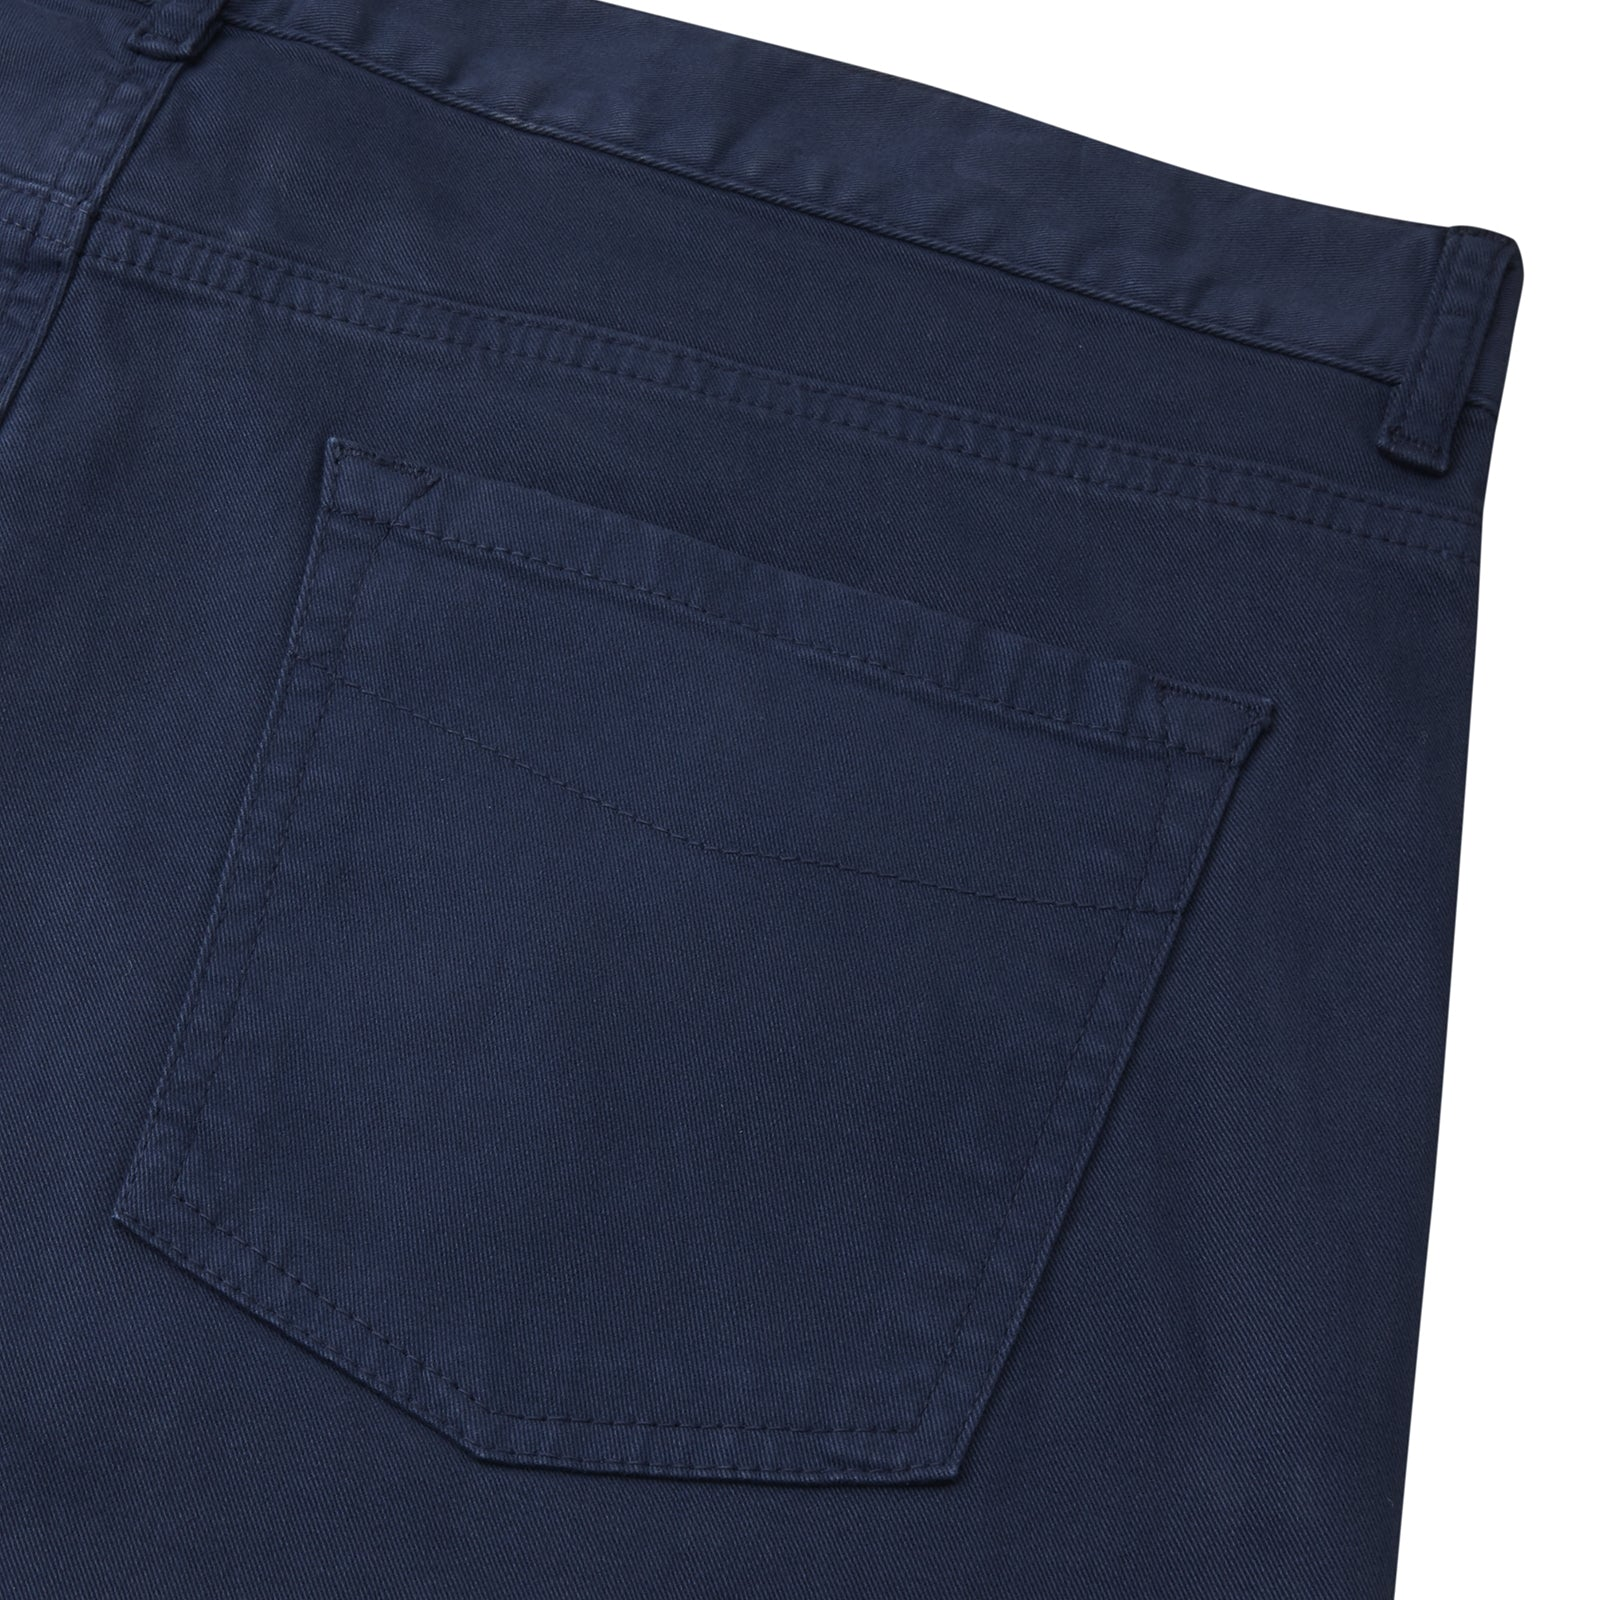 Milo 5 Pocket Cotton Twill Jean